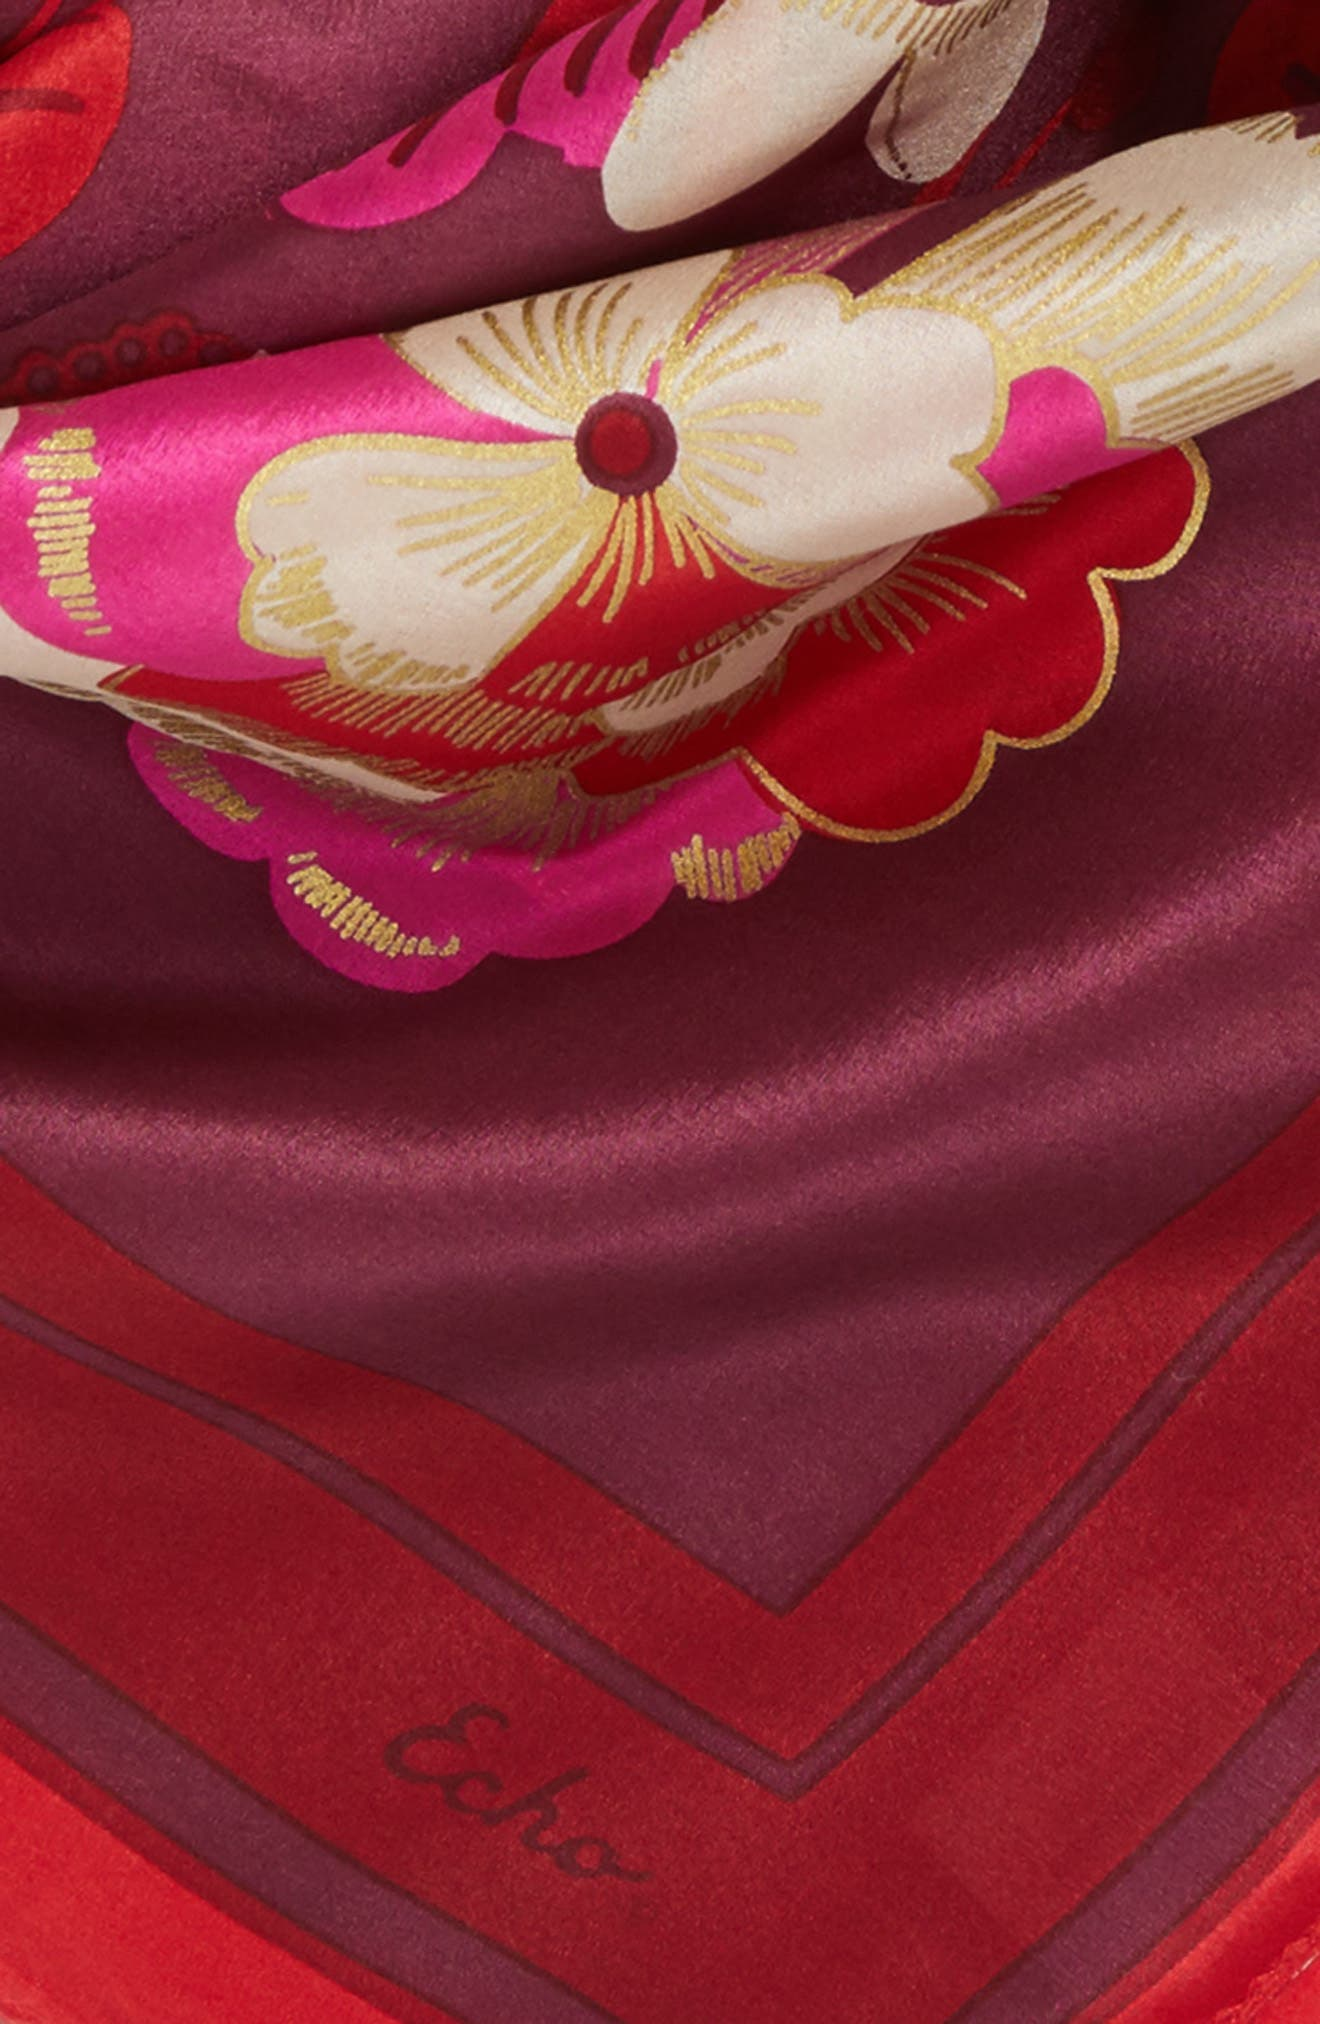 Bloomsbury Square Silk Scarf,                             Alternate thumbnail 4, color,                             Currant